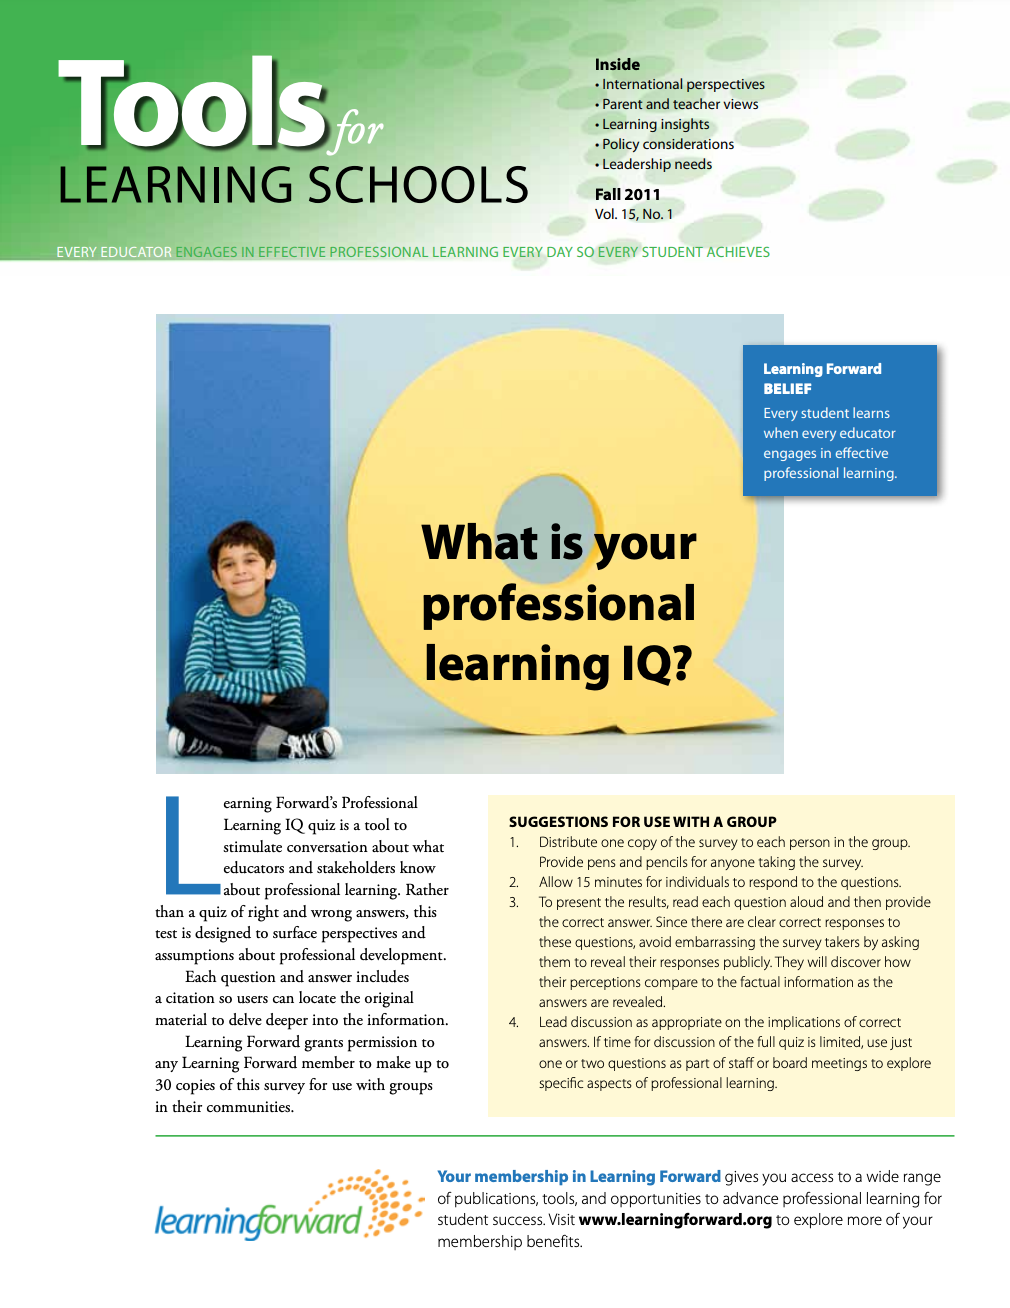 tools-for-learning-schools-fall-2011-vol-15-no-1